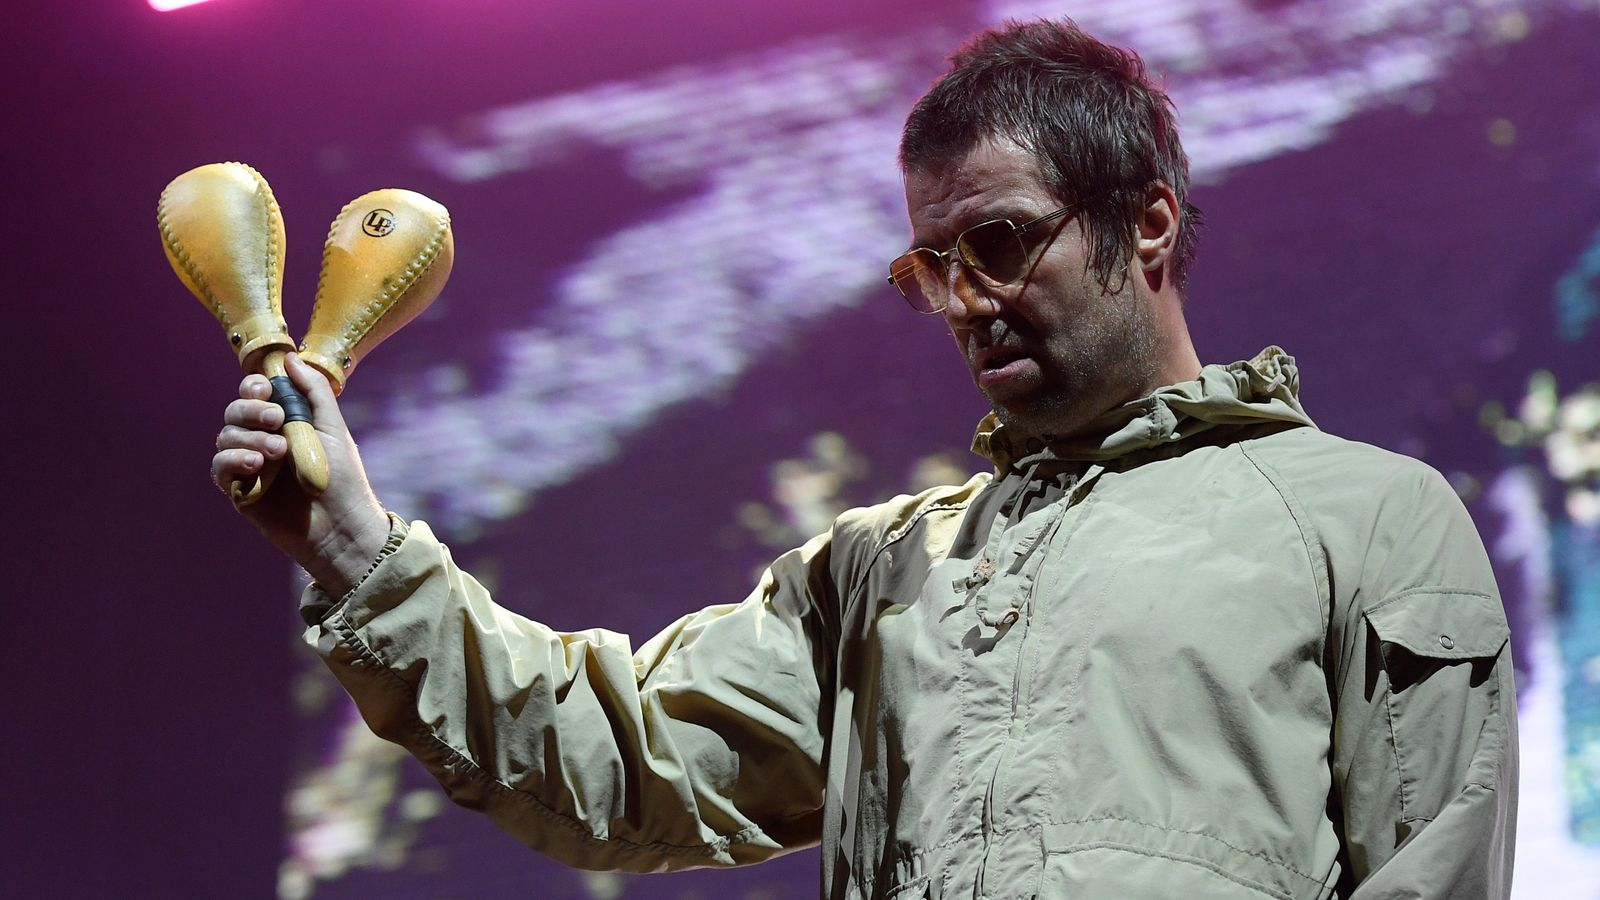 Isle of Wight Festival: Liam Gallagher and Duran Duran among line-up